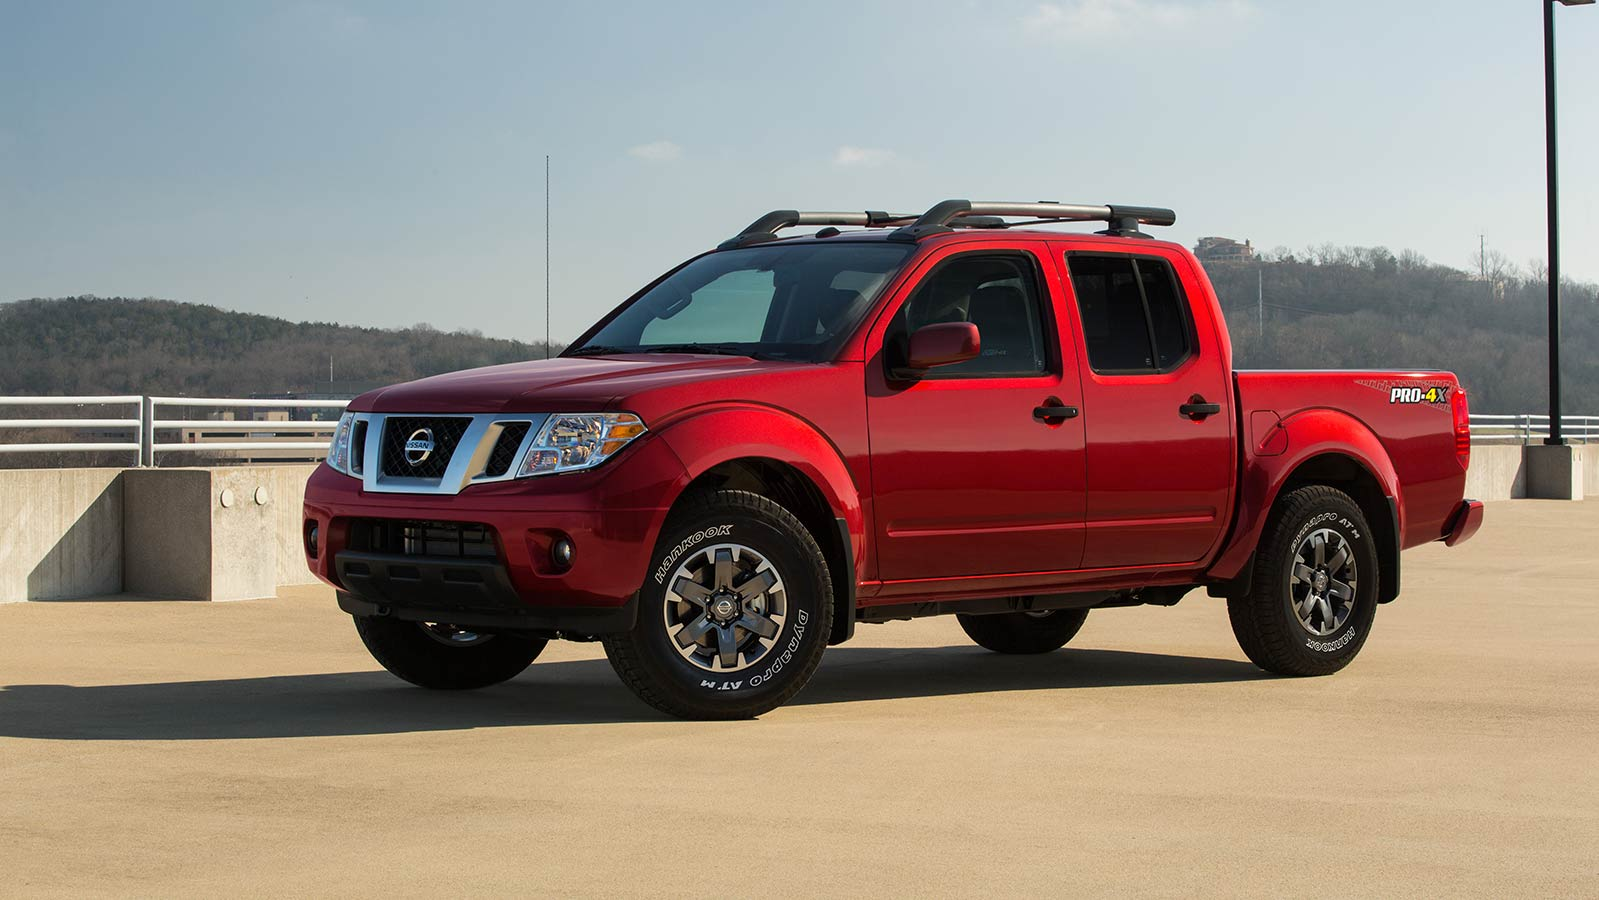 front and center Z1 Off-Road proudly welcomes all Frontier owners to the Z1 family!